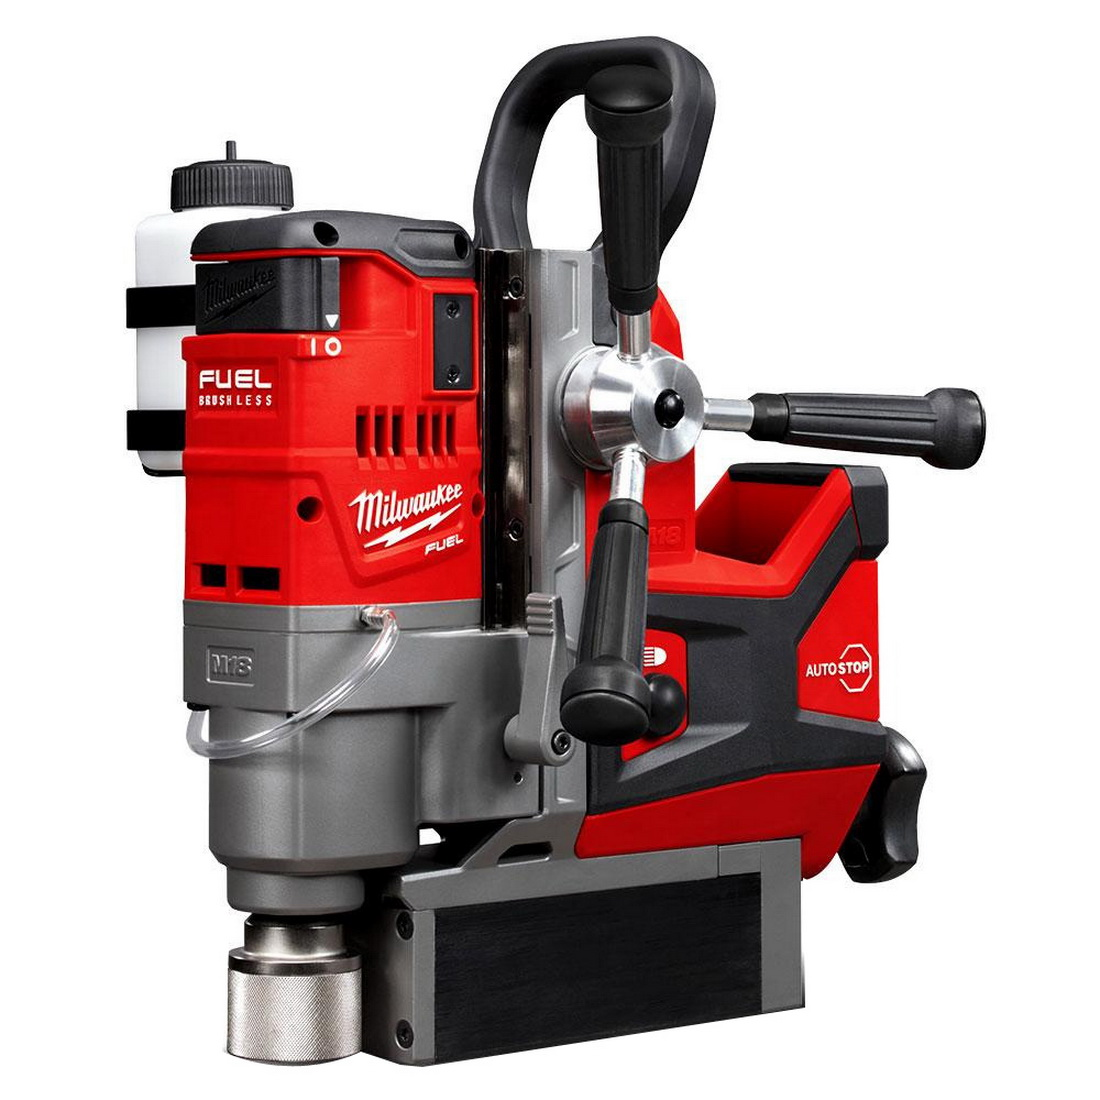 M18 FUEL Cordless Magnetic Drill 38mm